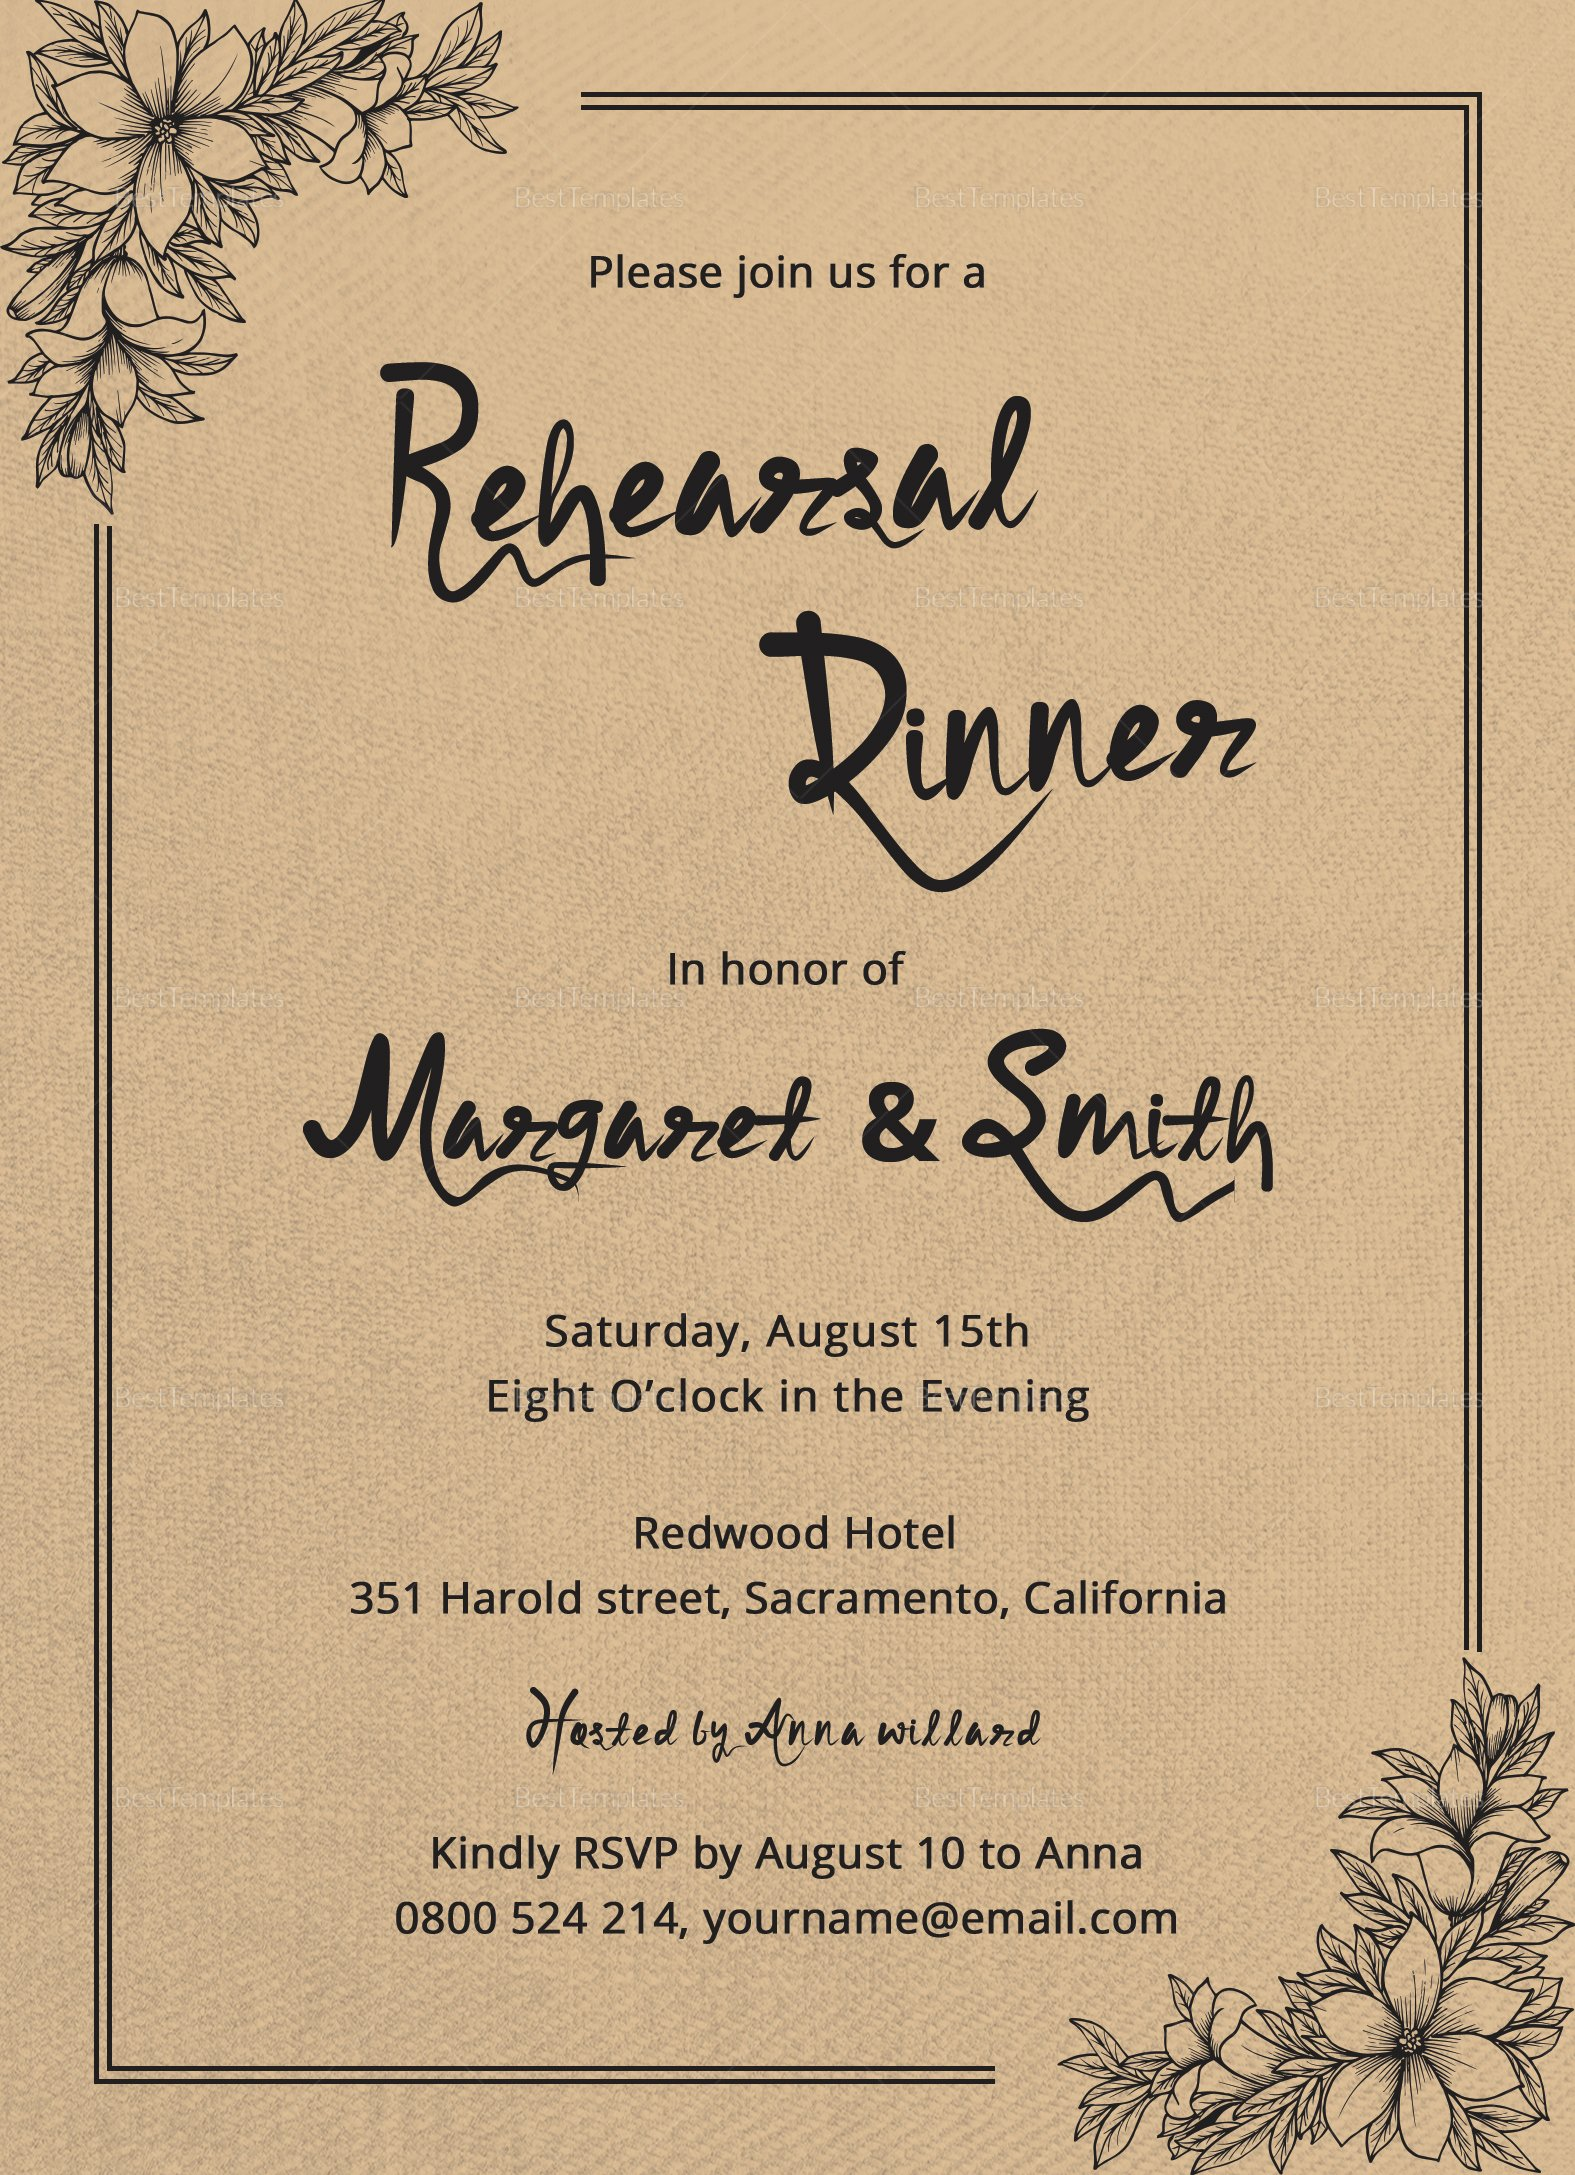 Dinner Invite Template Word Awesome Dinner Invitation Design Template In Word Psd Publisher